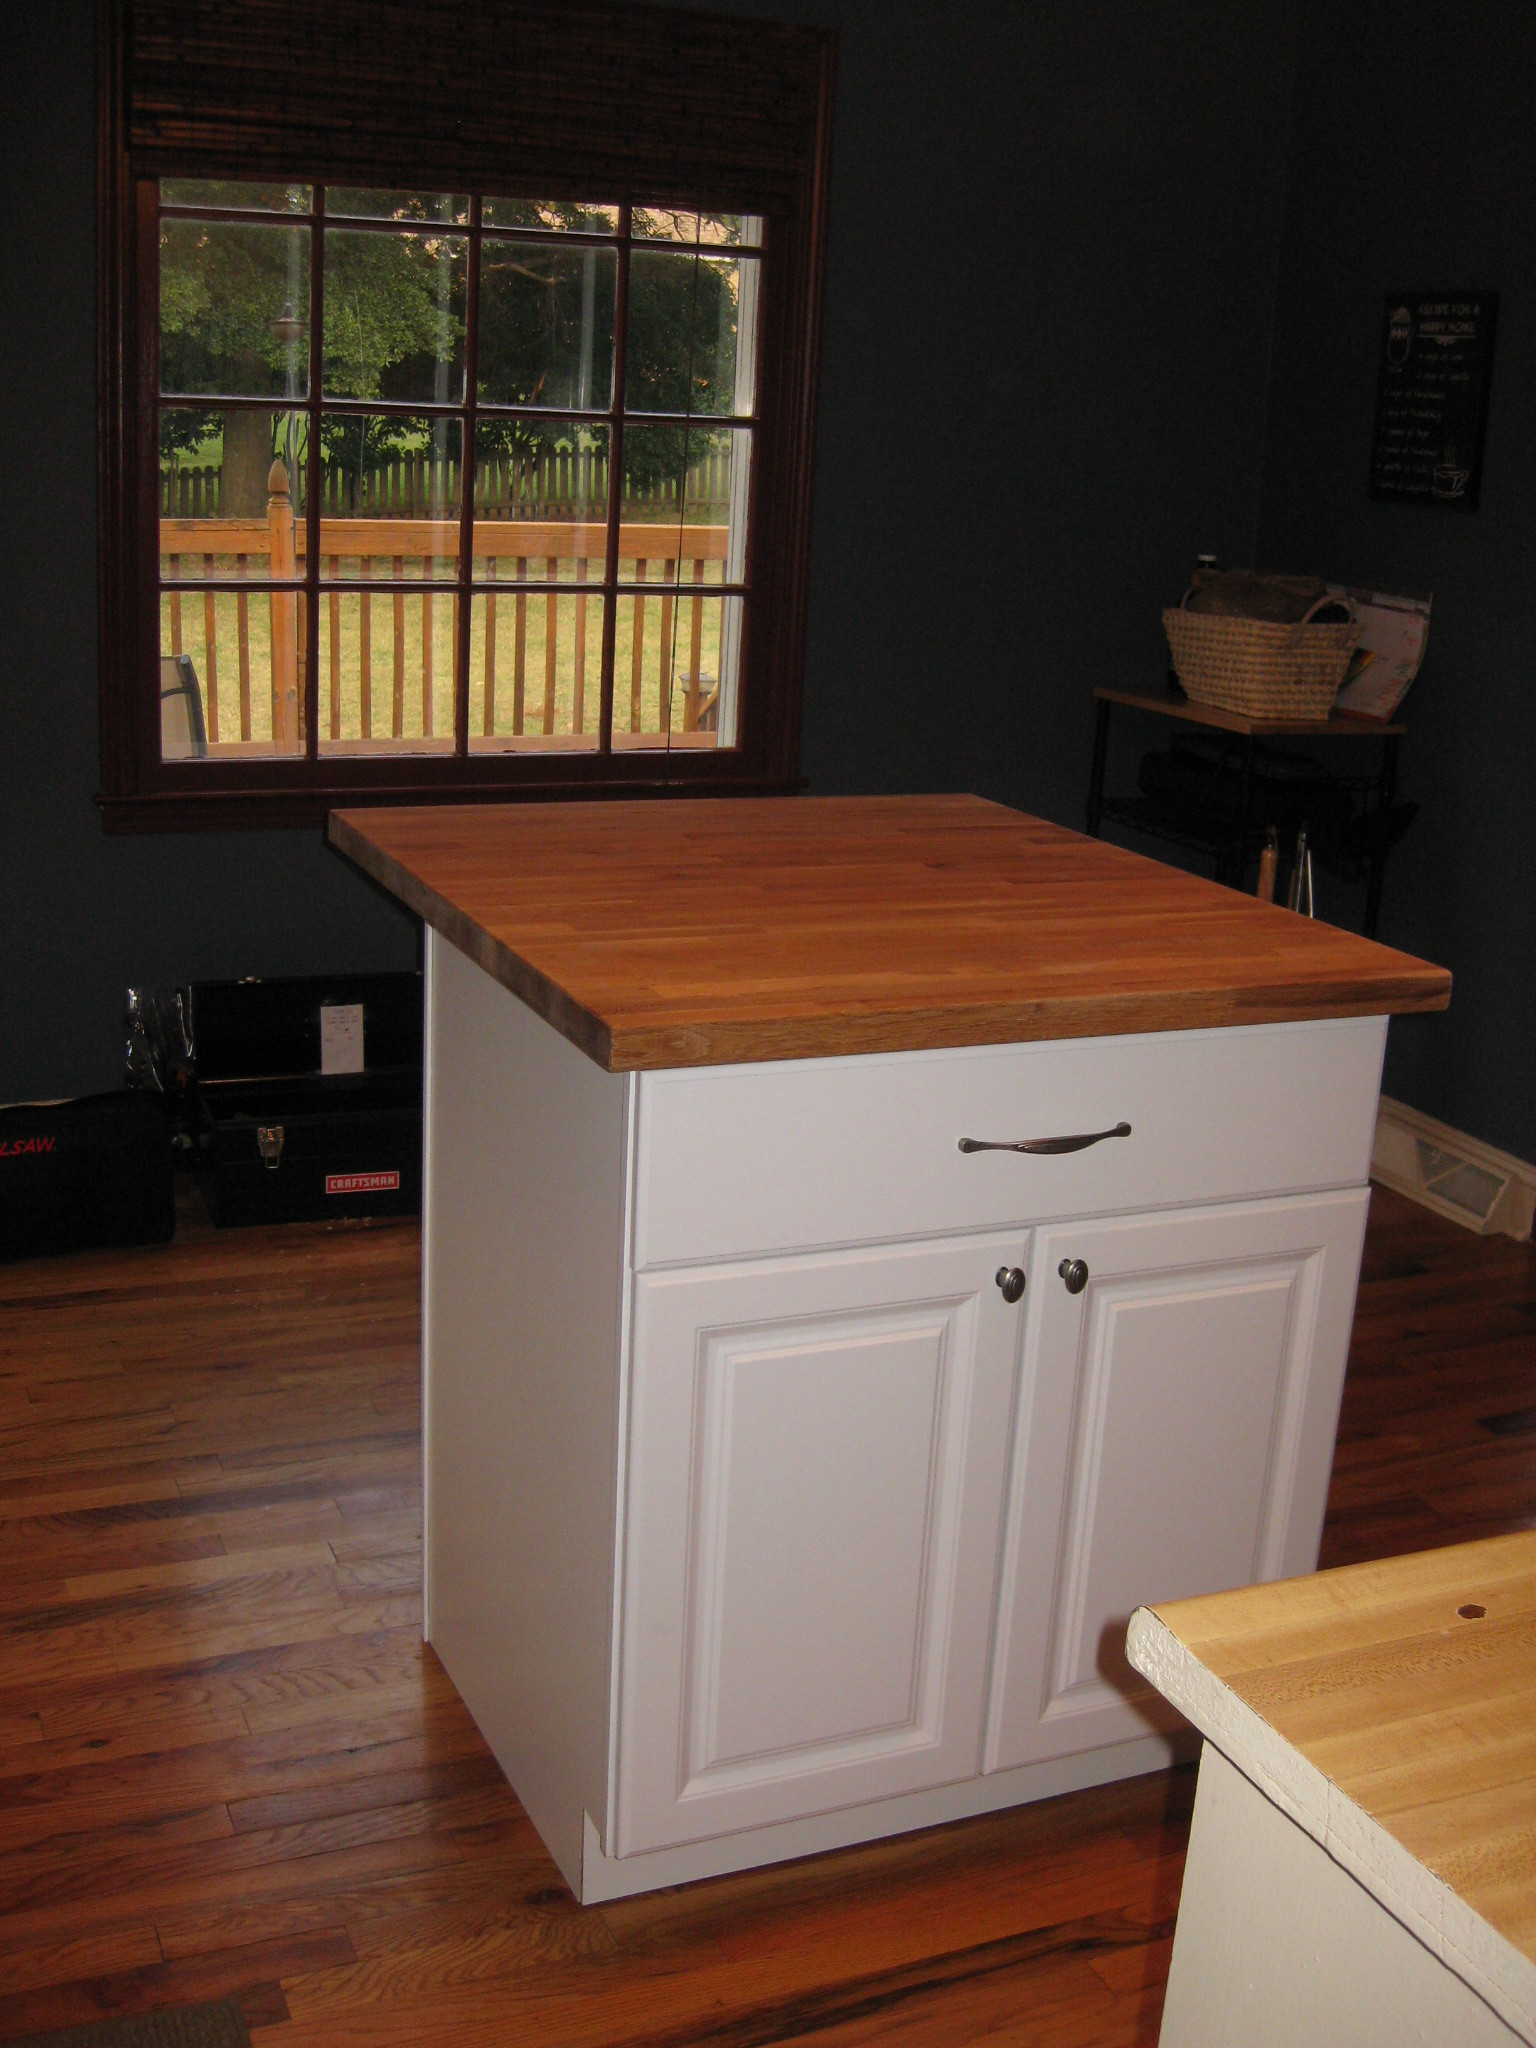 Best ideas about DIY Kitchen Island From Cabinets . Save or Pin DIY Kitchen Island Tutorial from pre made cabinets Now.